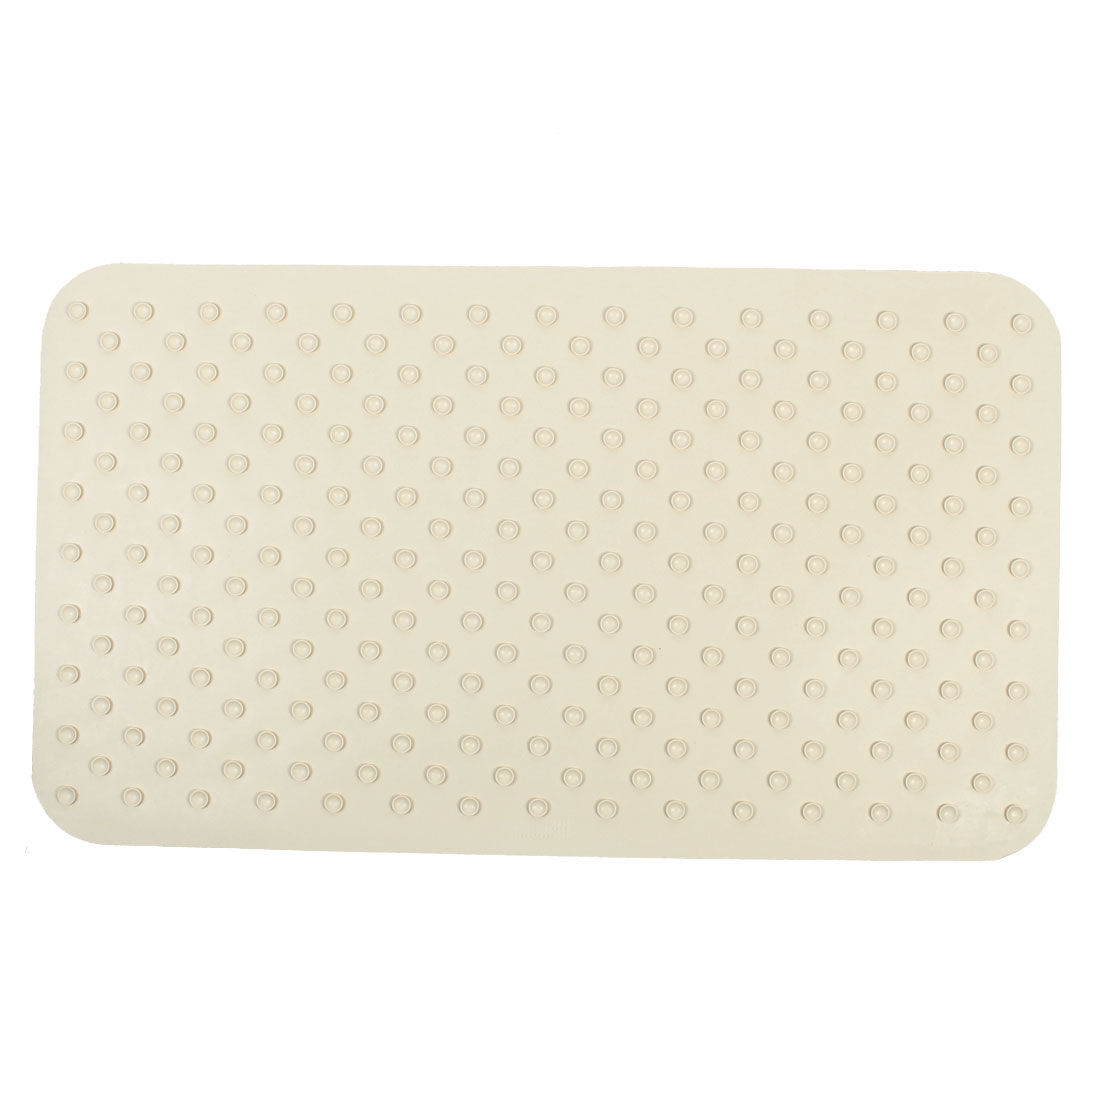 Gym Hotel Bathroom Rubber Paisley Pattern Non Slip Suction Bath Mat Pad Beige 40cm x 75cm